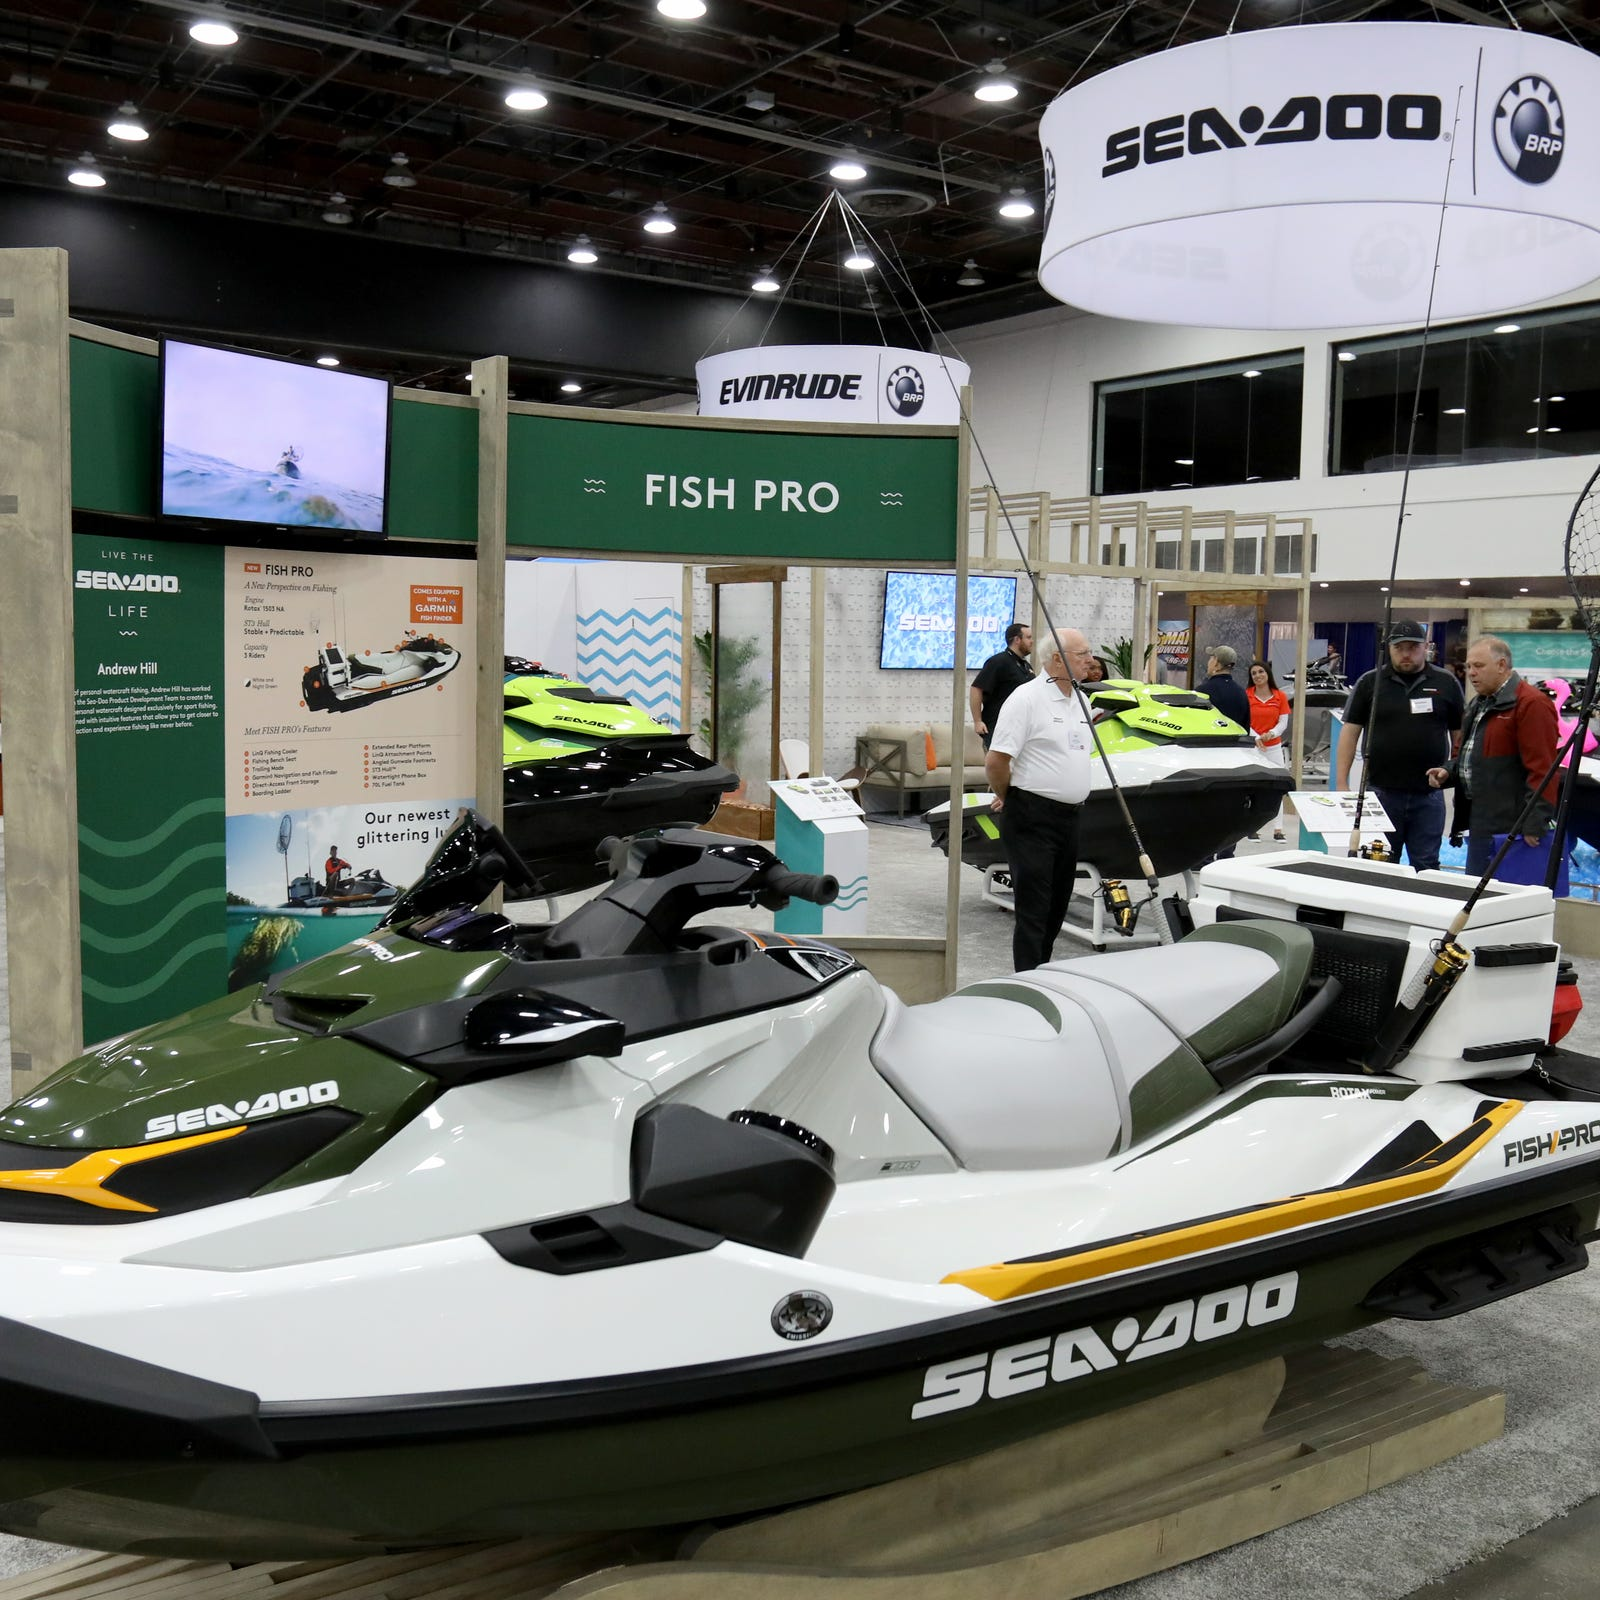 One of the newest personal watercraft on display...